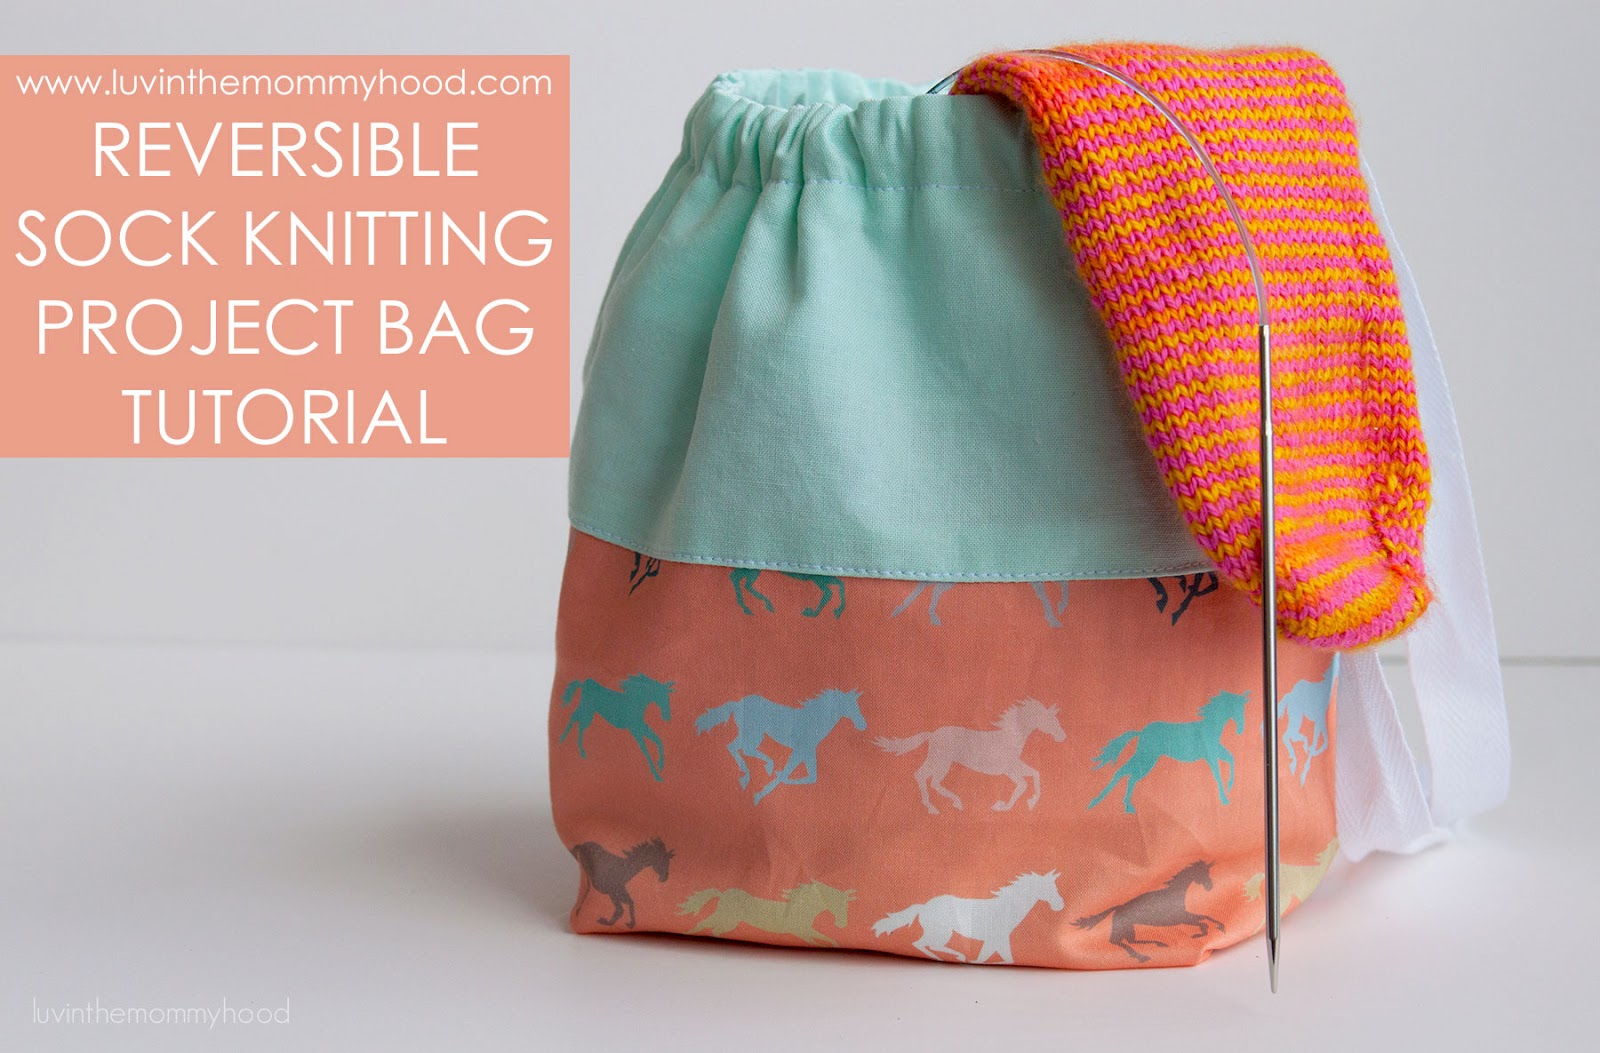 Knitting Project Bag Sewing Pattern : FREE TUTORIAL REVERSIBLE SOCK KNITTING PROJECT BAG   VERY SHANNON